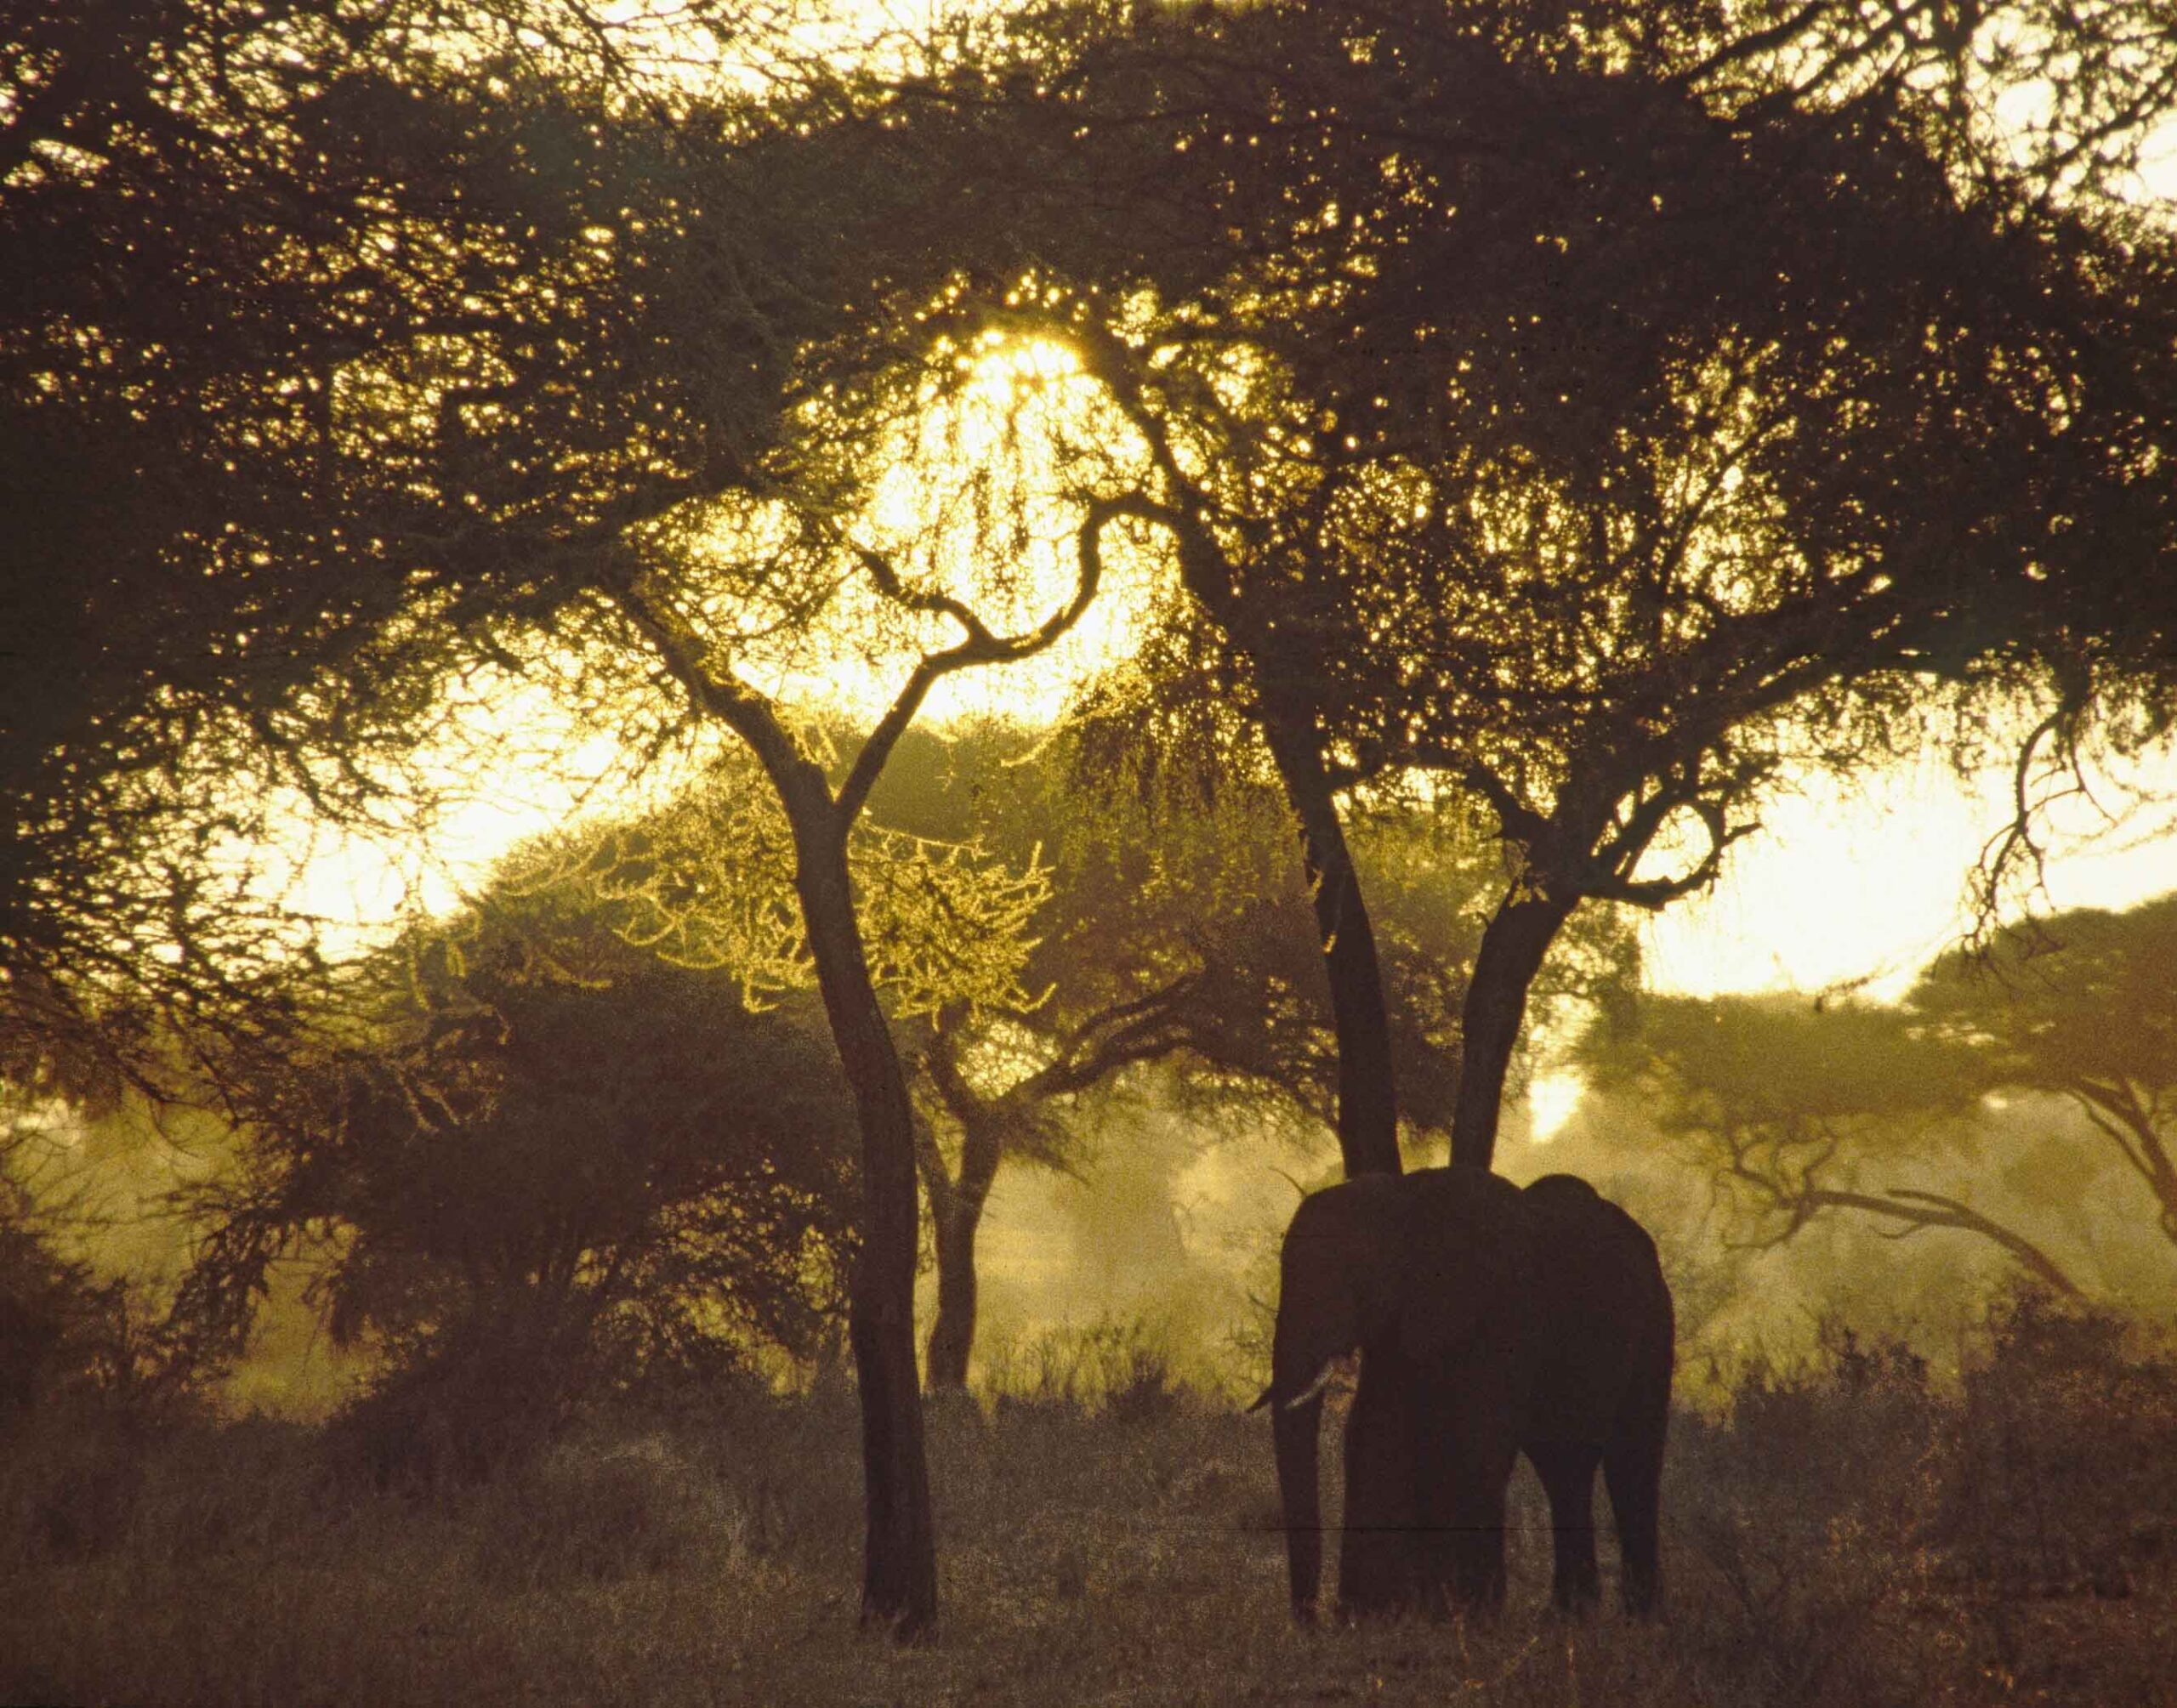 Elephant under a tree with sun behind